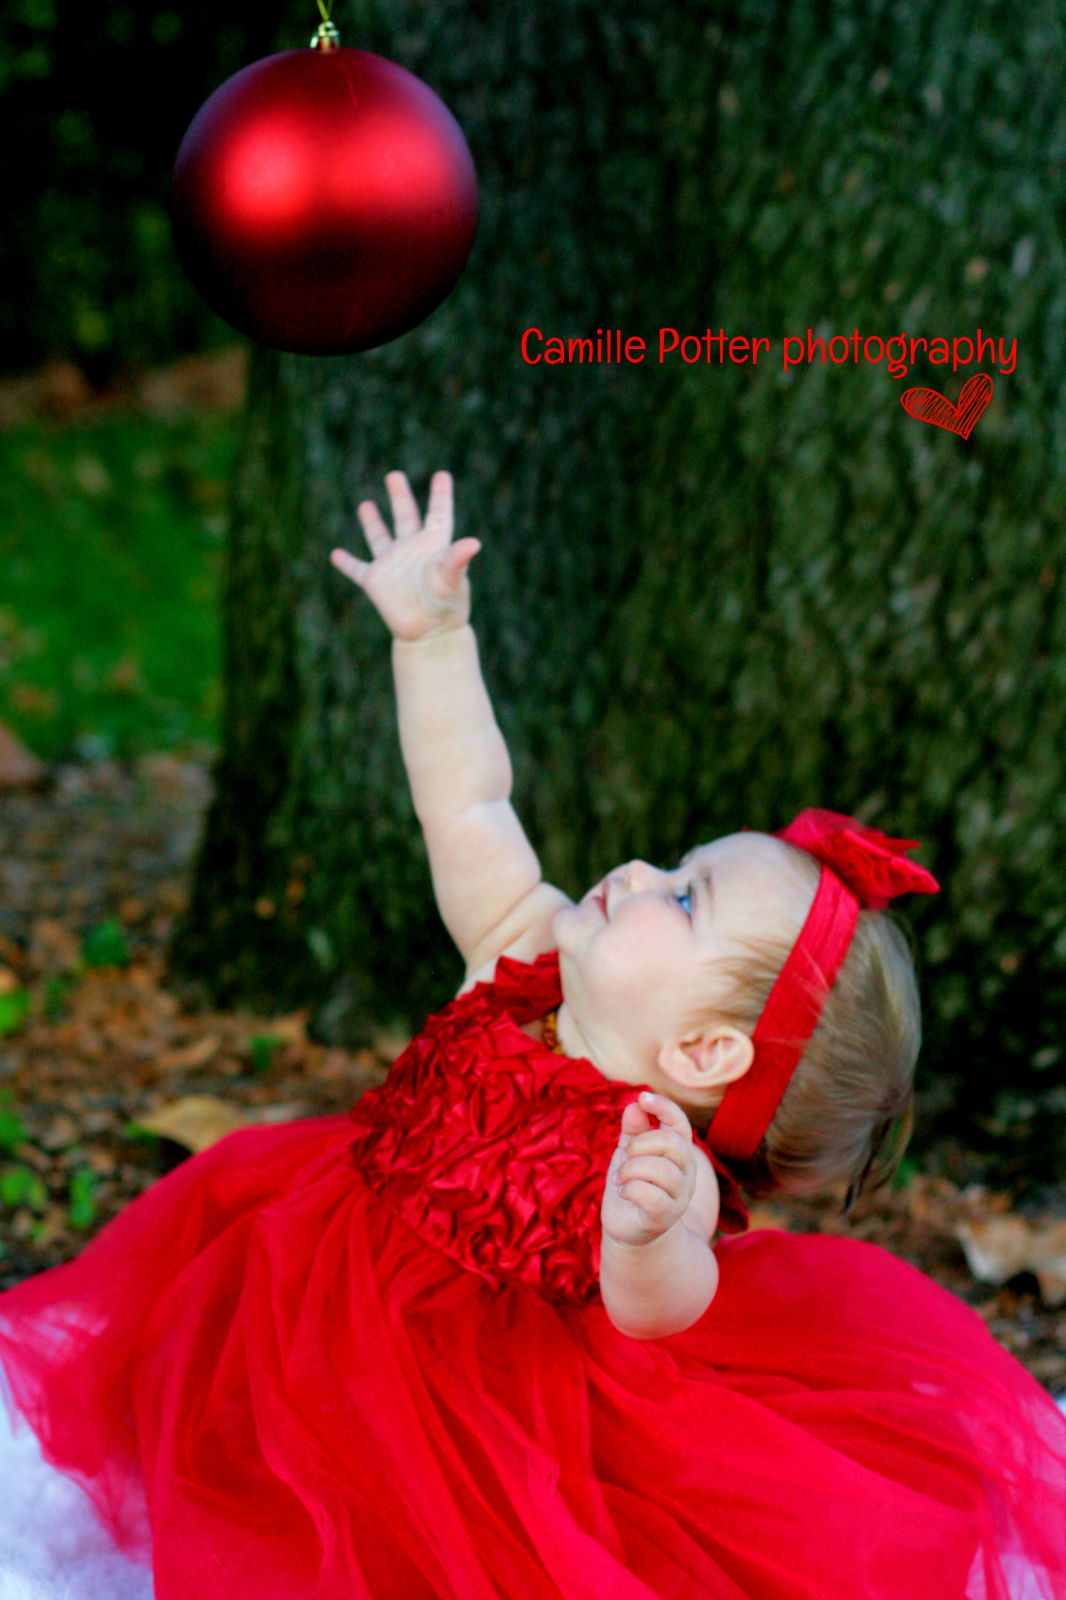 Christmas Gifts For 10 Month Old Part - 20: Holiday Christmas Photography Ideas. Easy Photo Props. 10 Months Old.  Camille Potter Photography